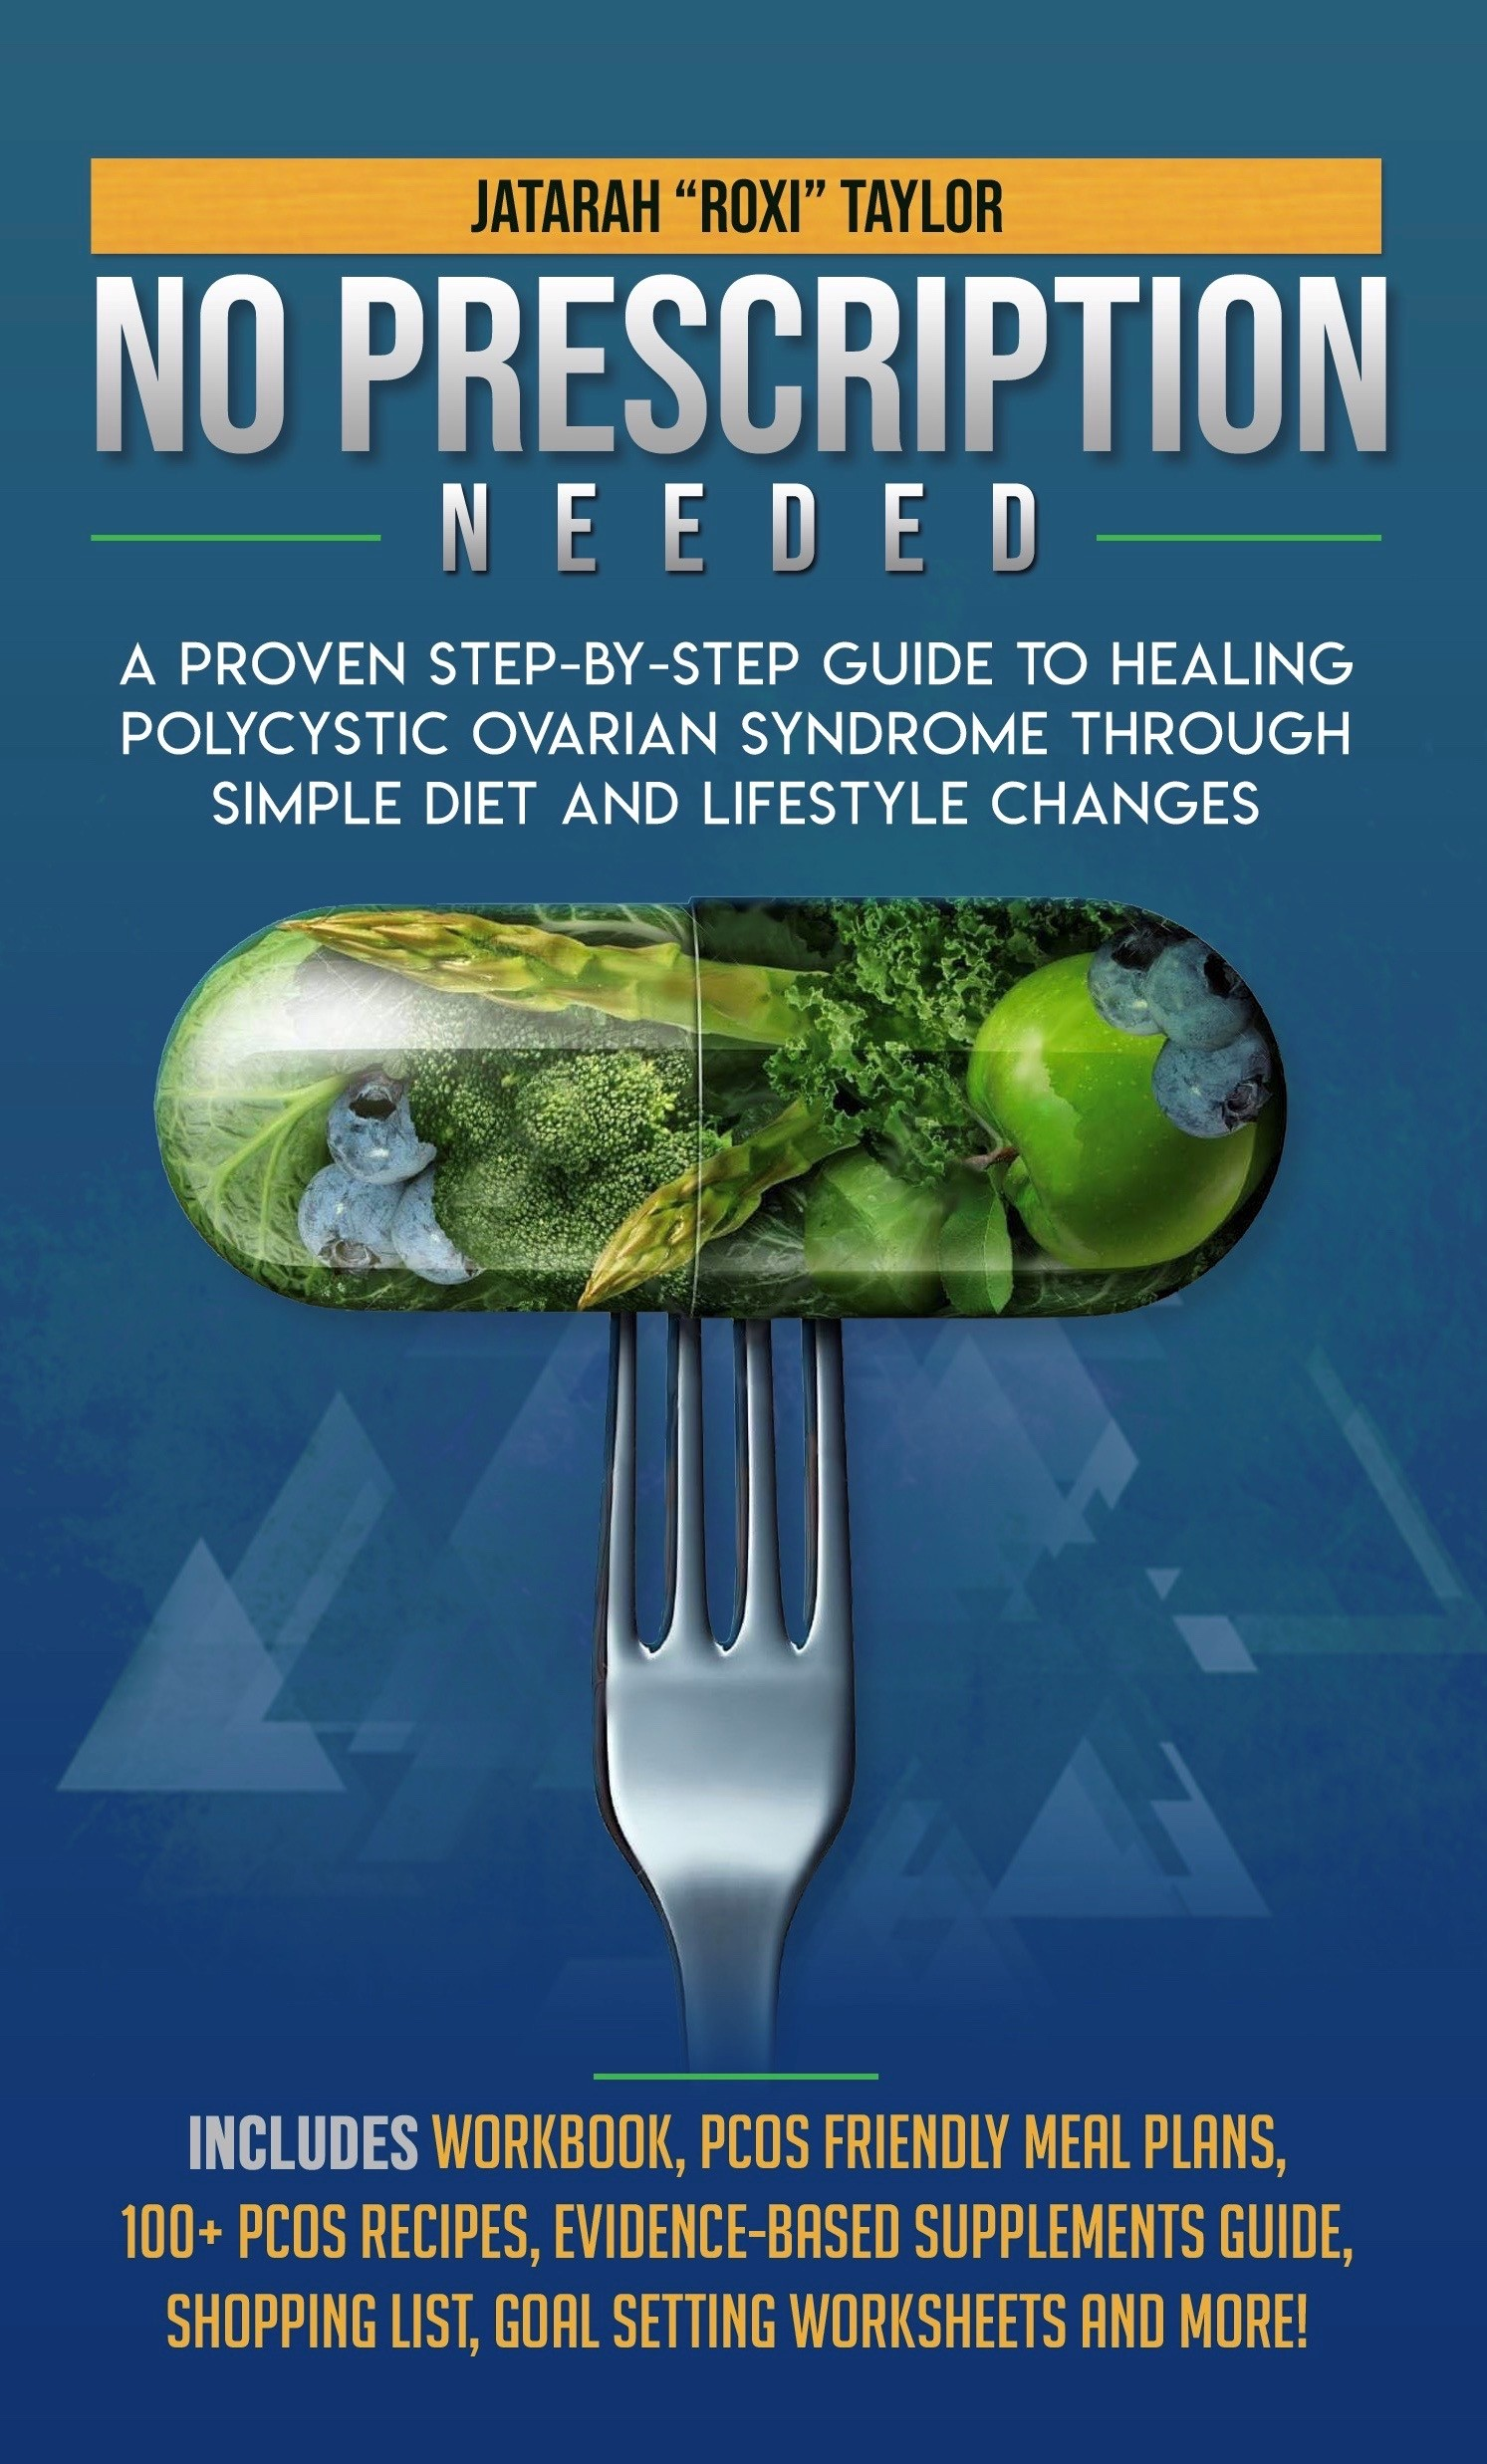 Author & Holistic Health Practitioner Demystifies Polycystic Ovarian Syndrome (PCOS) in New Book, No Prescription Needed